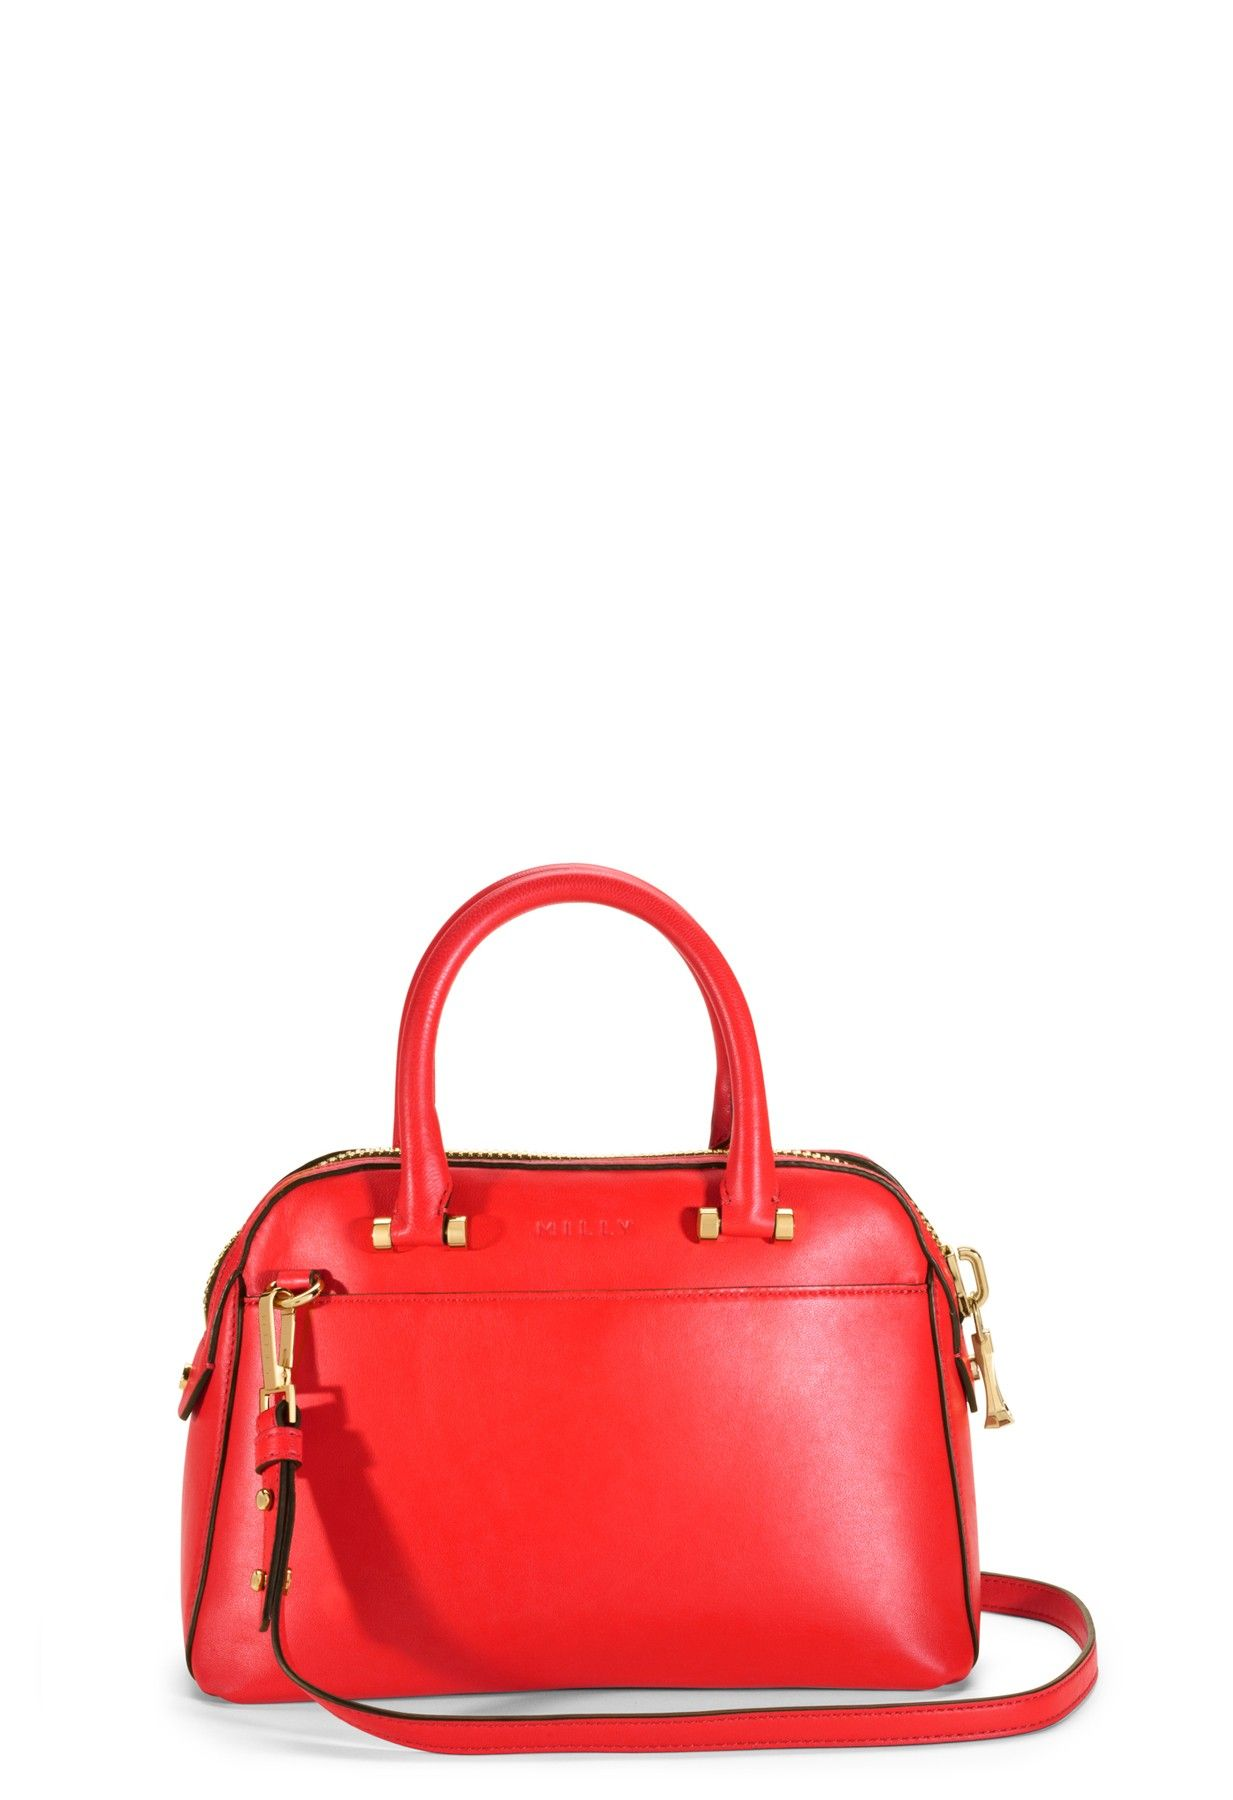 Blake Small Satchel Vermilion Red Milly Ny